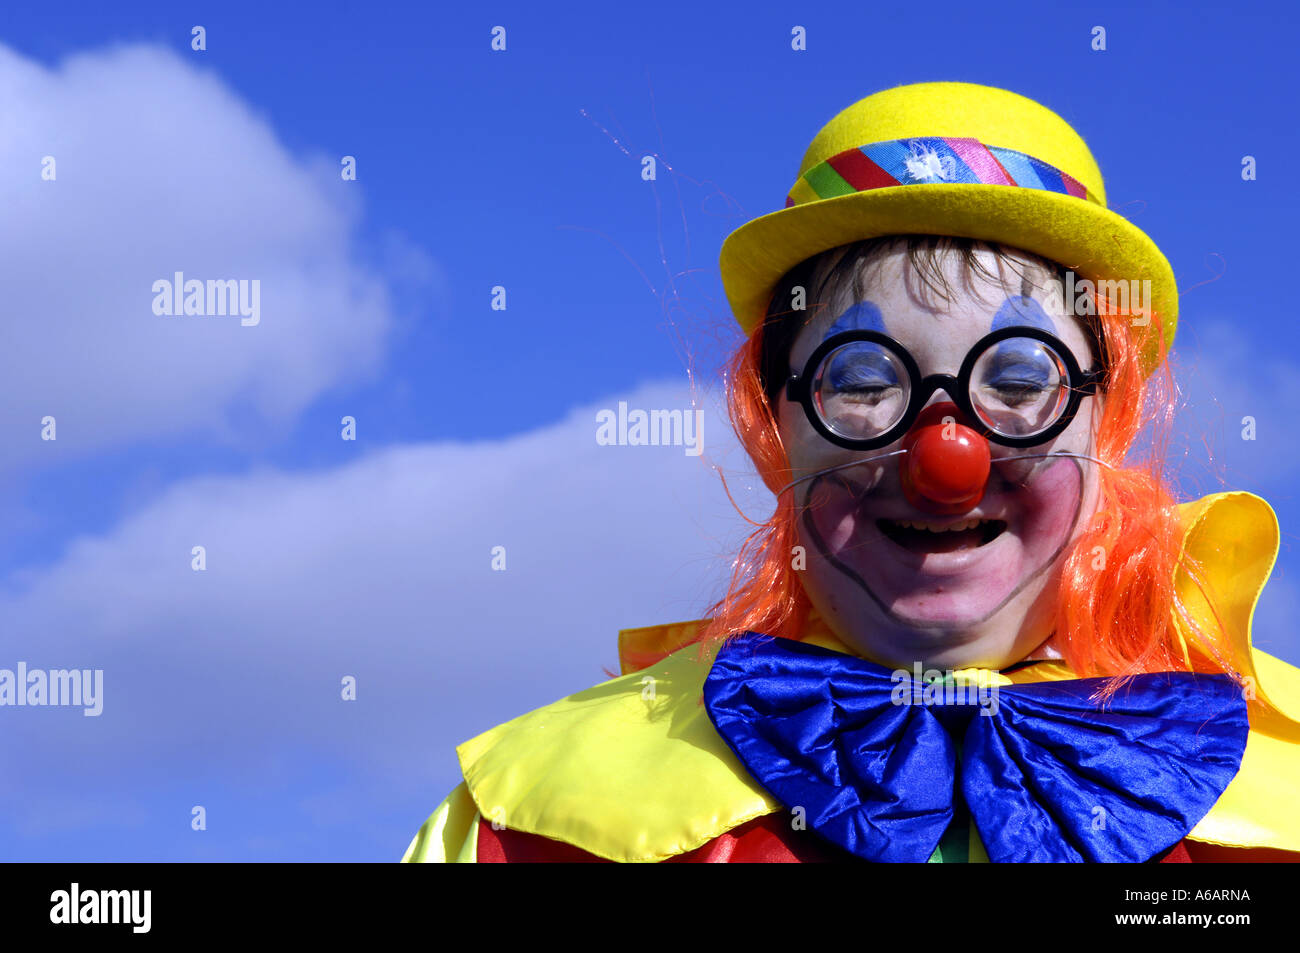 Theatrical Funny Clown Big Red Stock Photos Theatrical Funny Clown